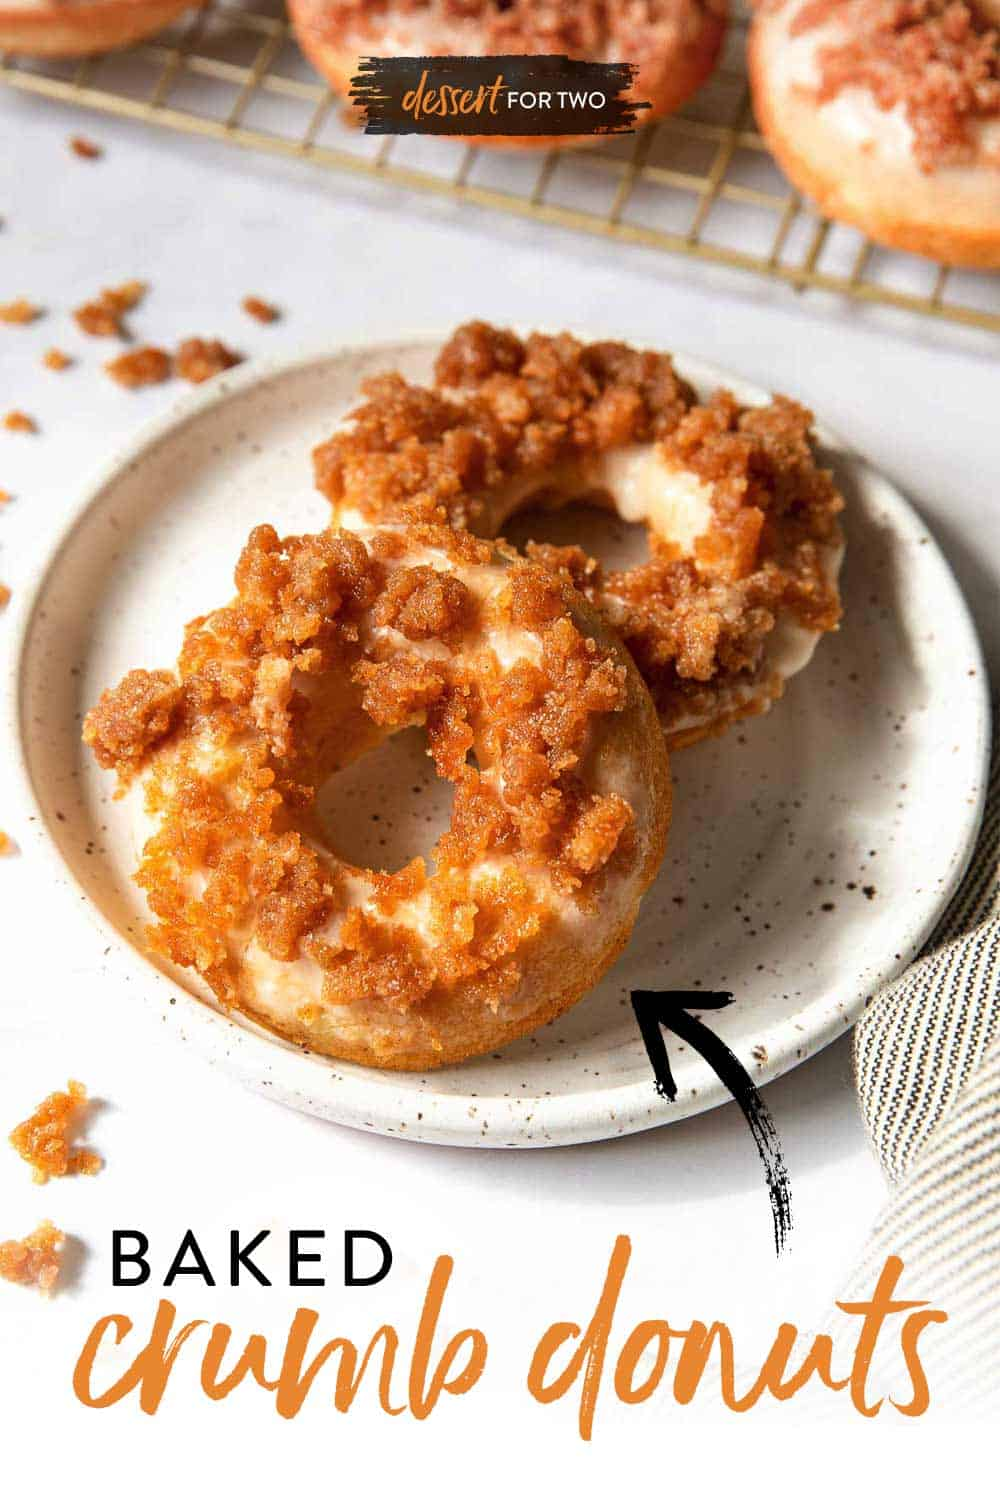 Two crumb donuts on a white plate.